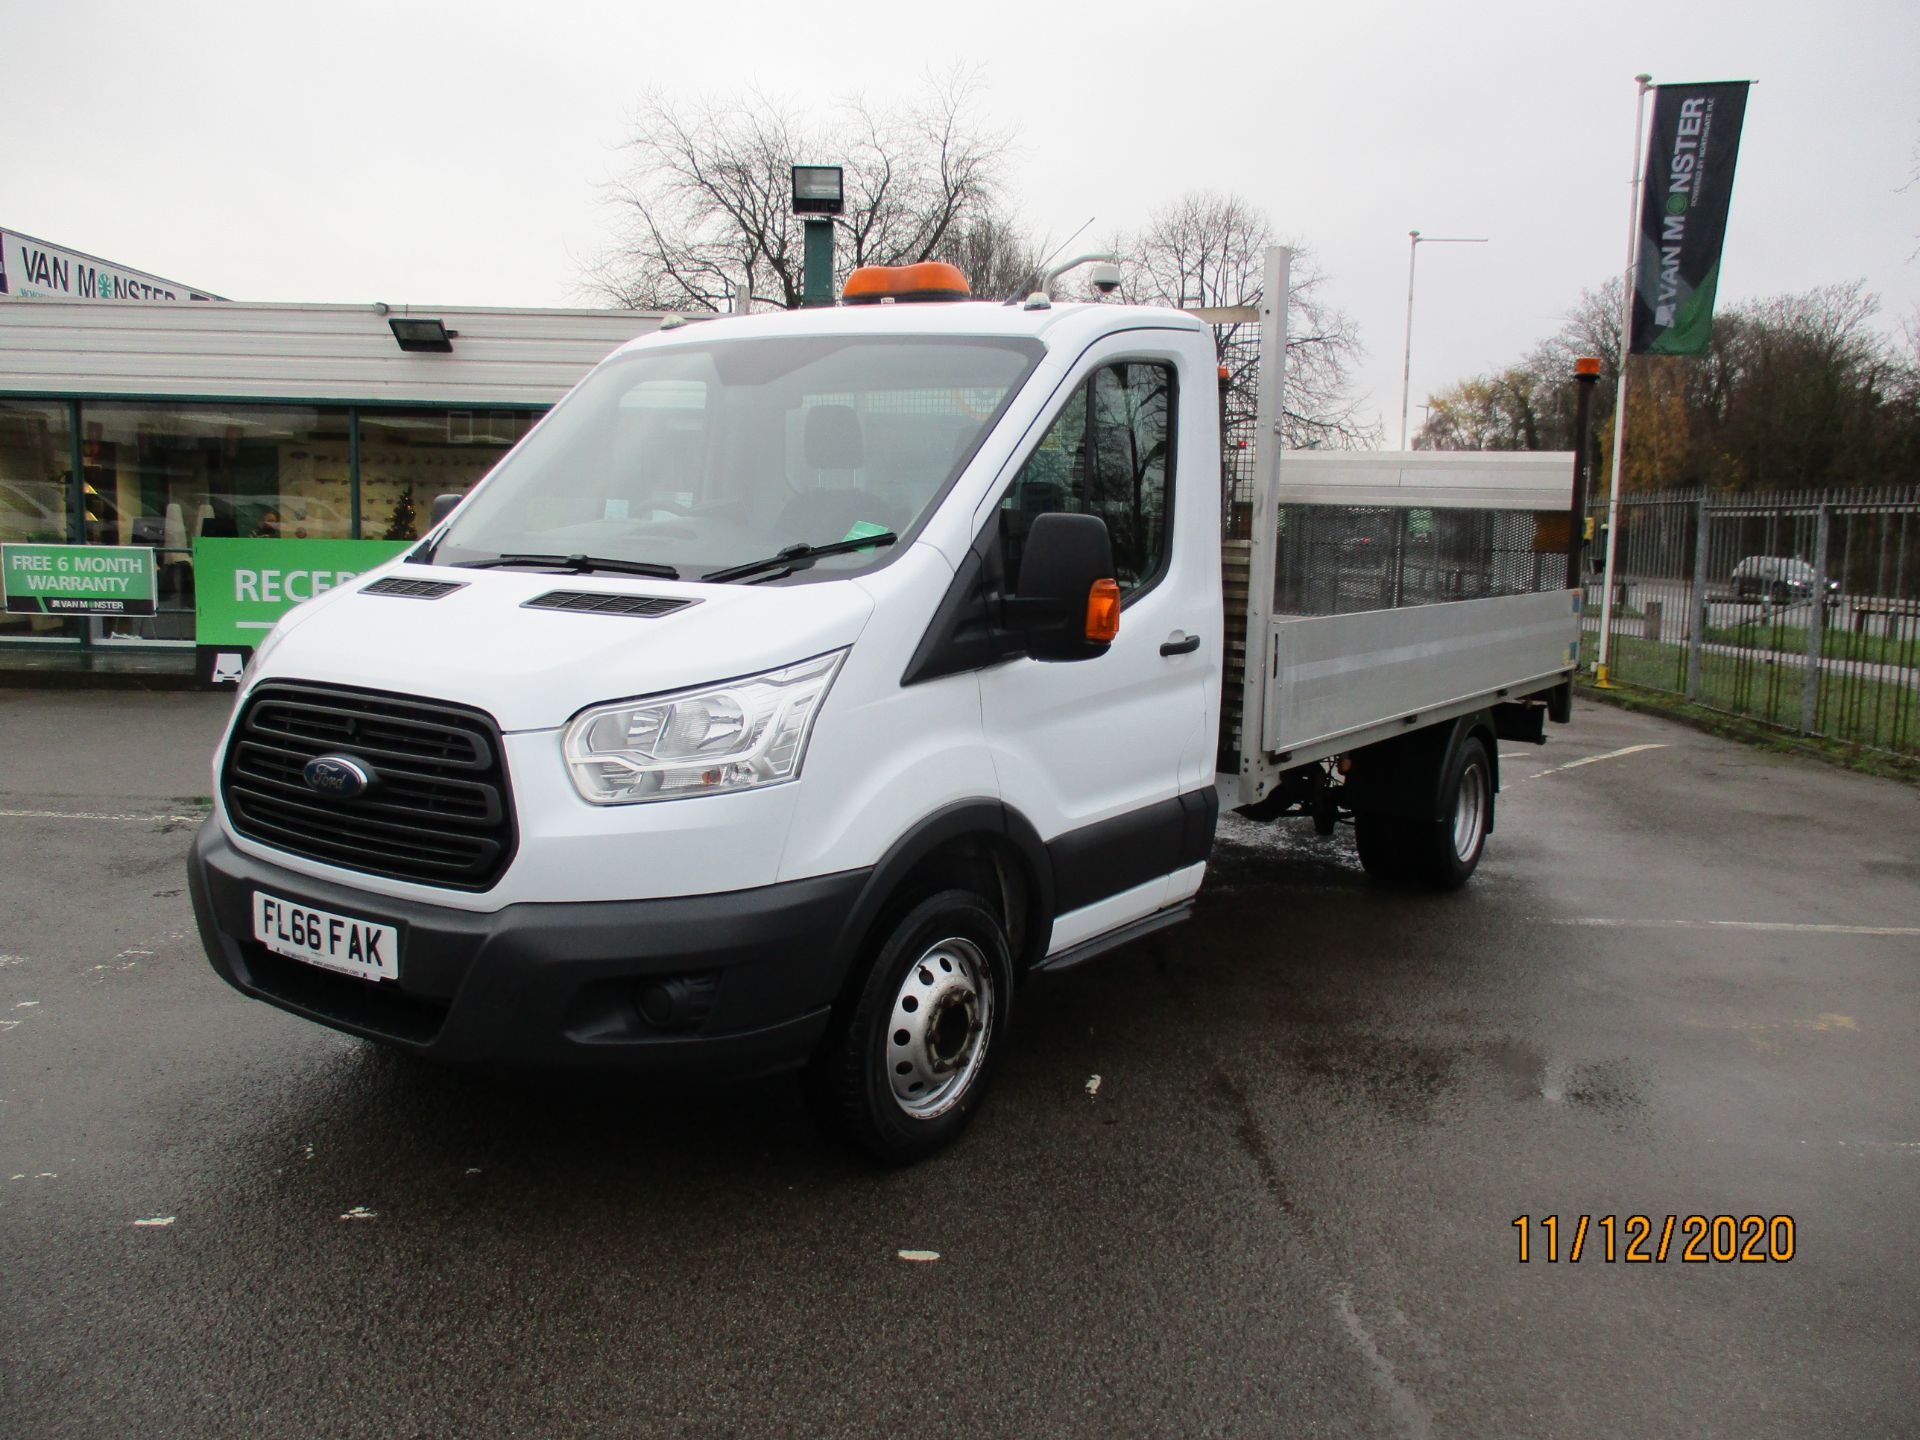 2016 Ford Transit 2.2 Tdci 125Ps Chassis Cab (FL66FAK) Image 3